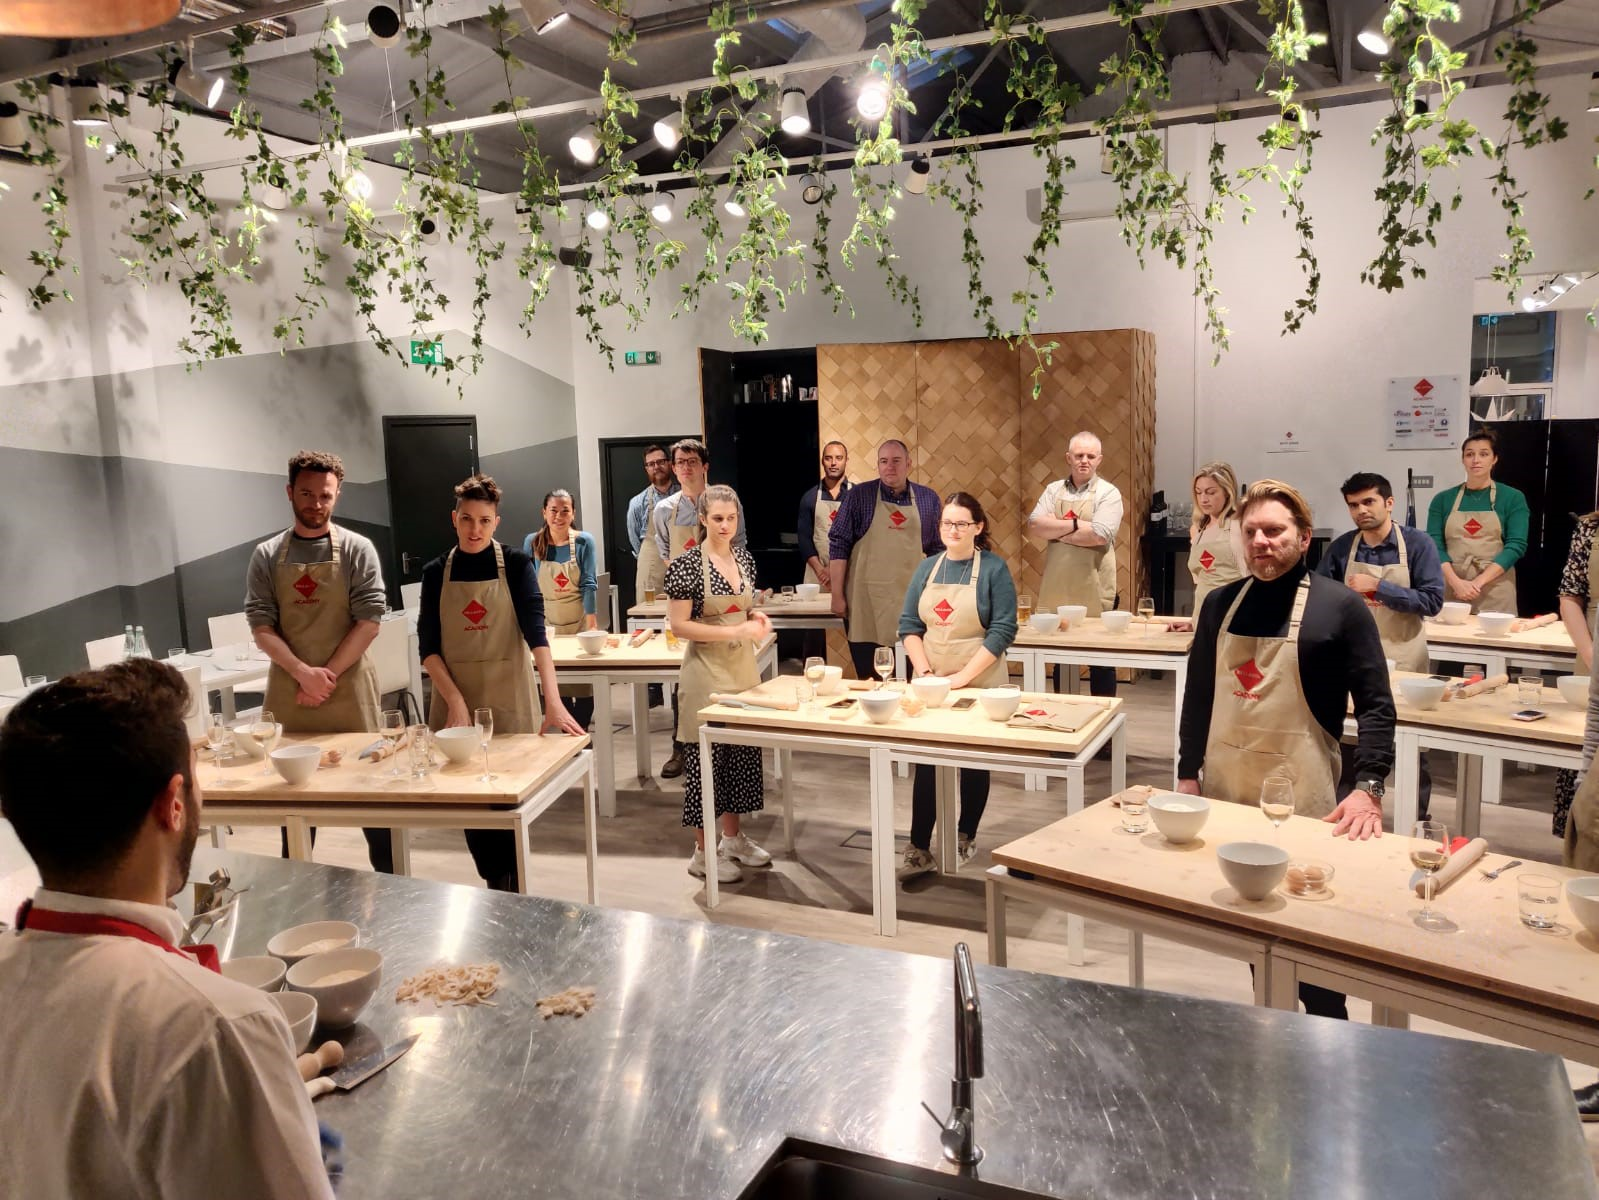 Pasta Making Masterclass With a Professional Italian Chef by Bellavita Academy - food in London